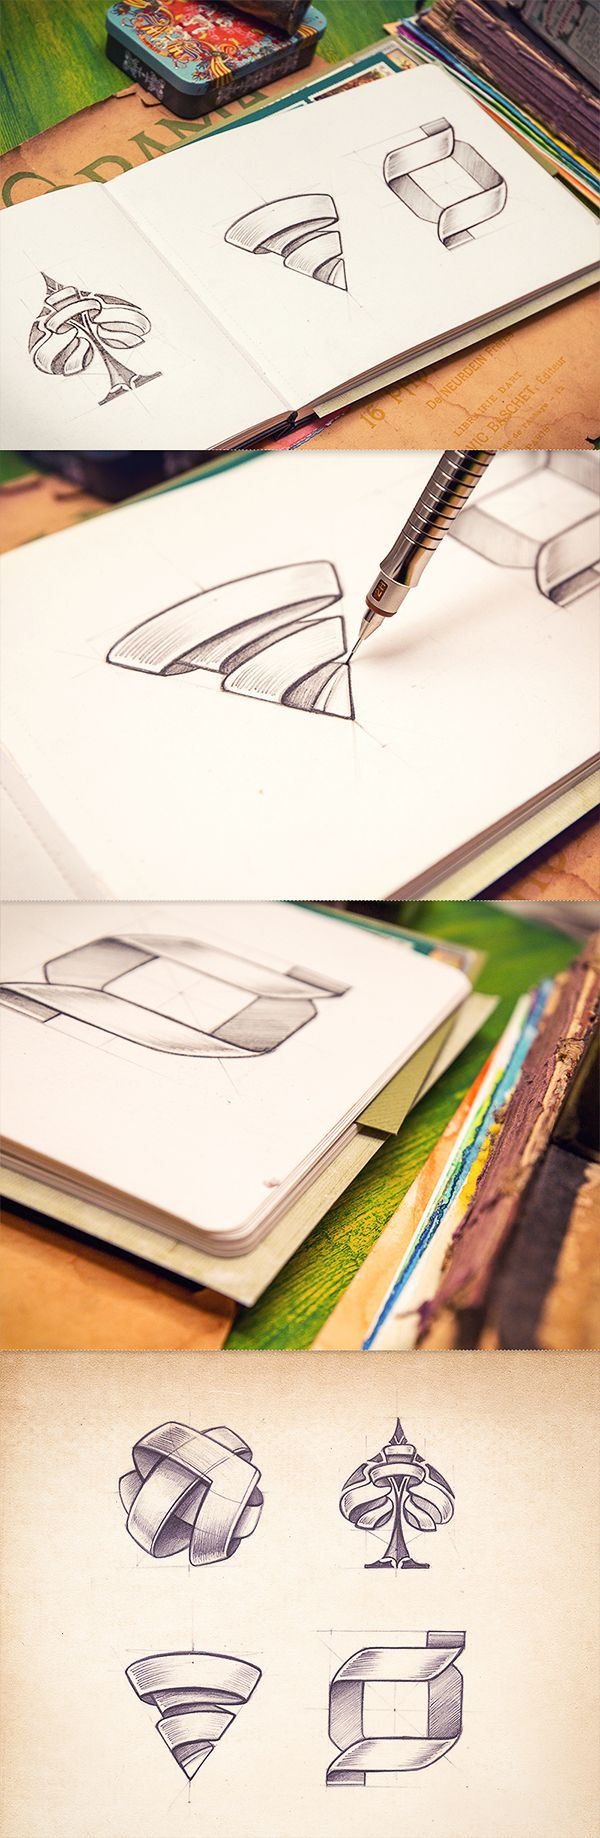 Sketchbook by Mike, via Behance